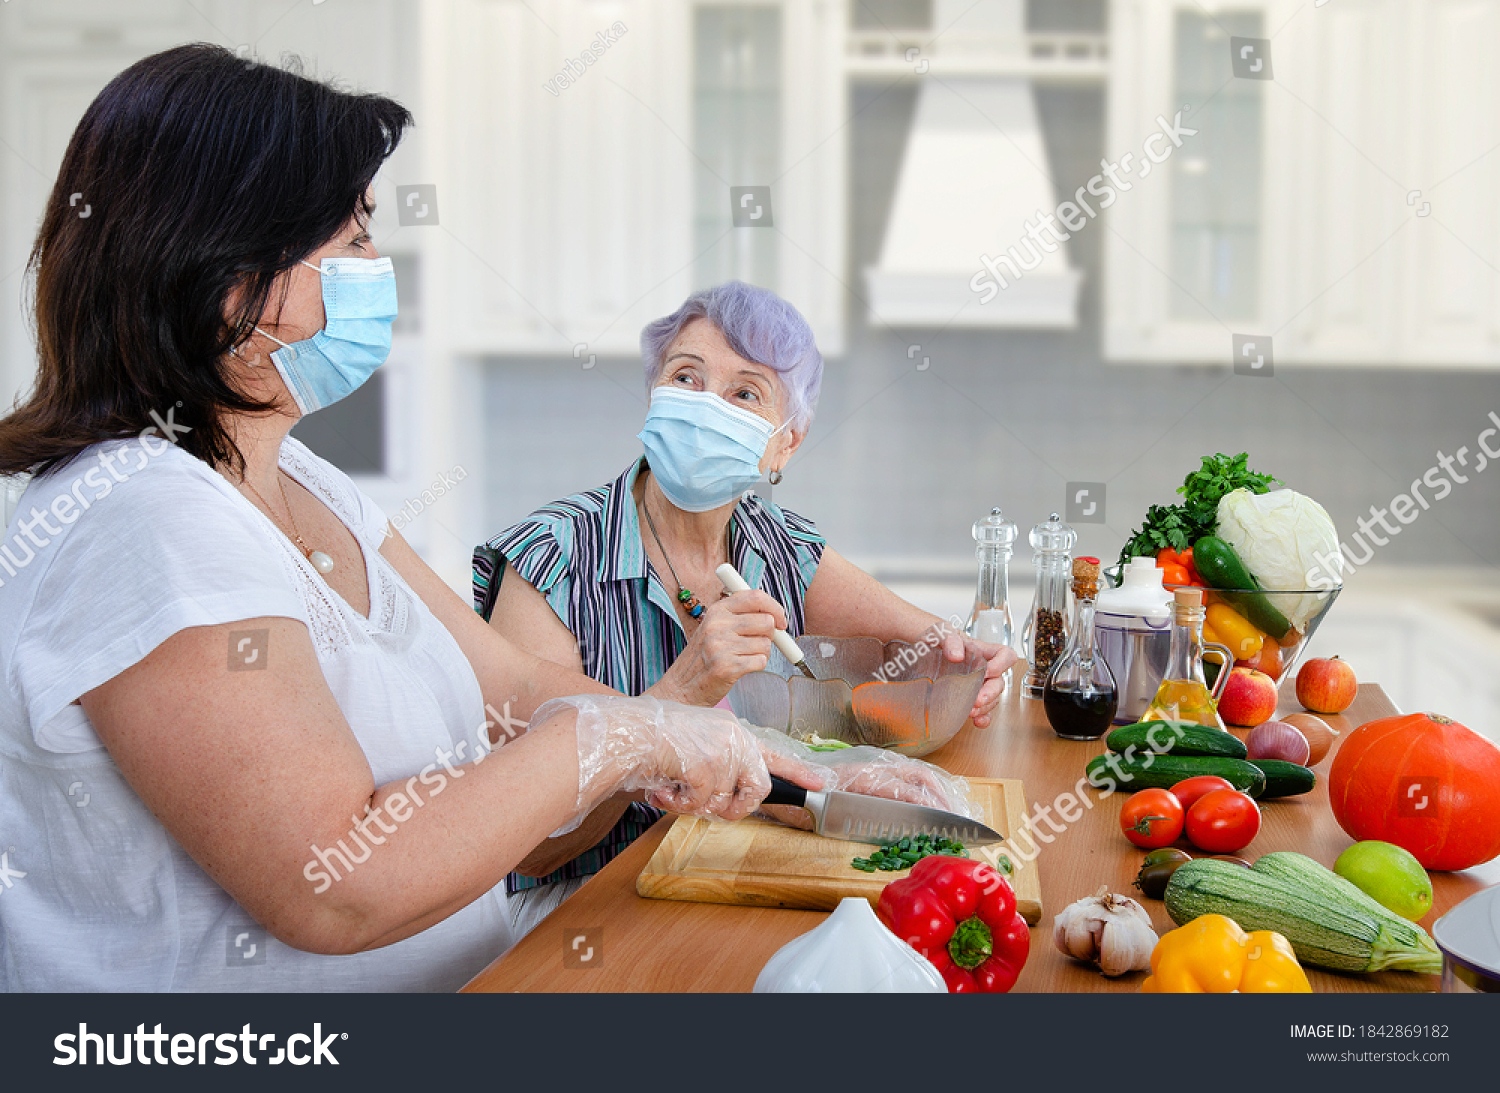 Even the pandemic could not cancel the weekly joint cooking of a vegetable salad by a caregiver and old lady. Only both are wearing protective face masks now. #1842869182